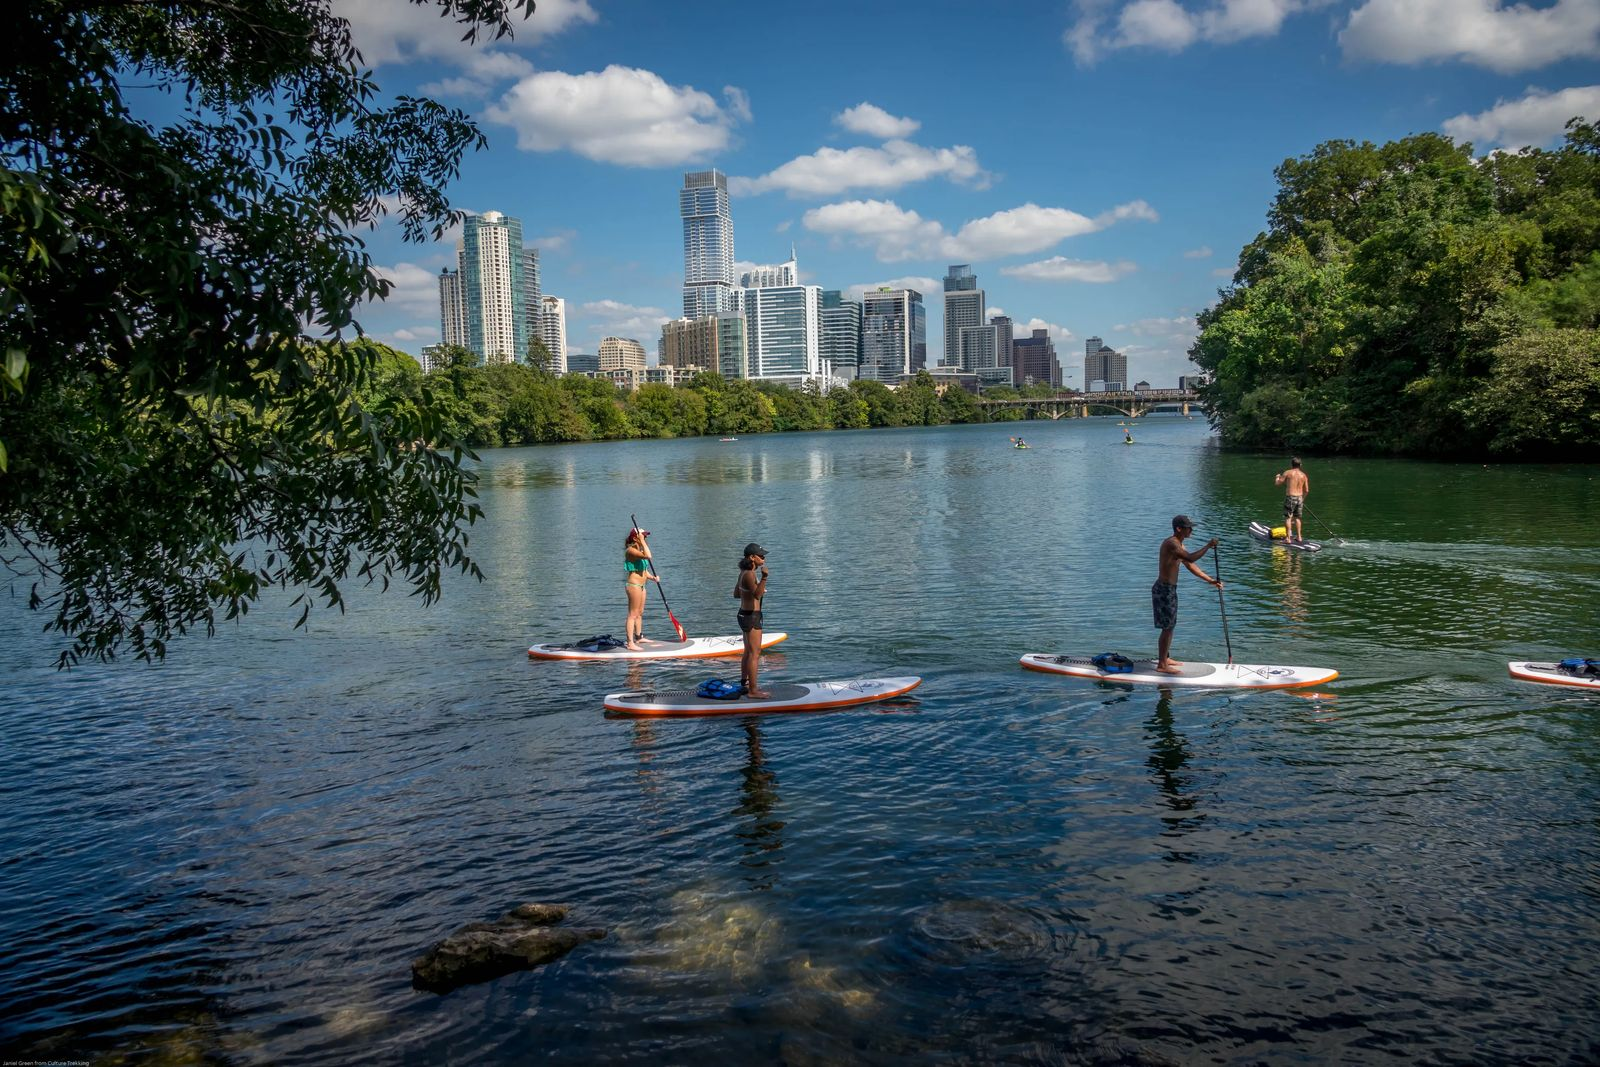 Austin Skyline and SUP - Unique things to do in Austin Texas - Culture Trekking - #AustinTexas #uniquethingstodoinaustin #Keepaustinweird